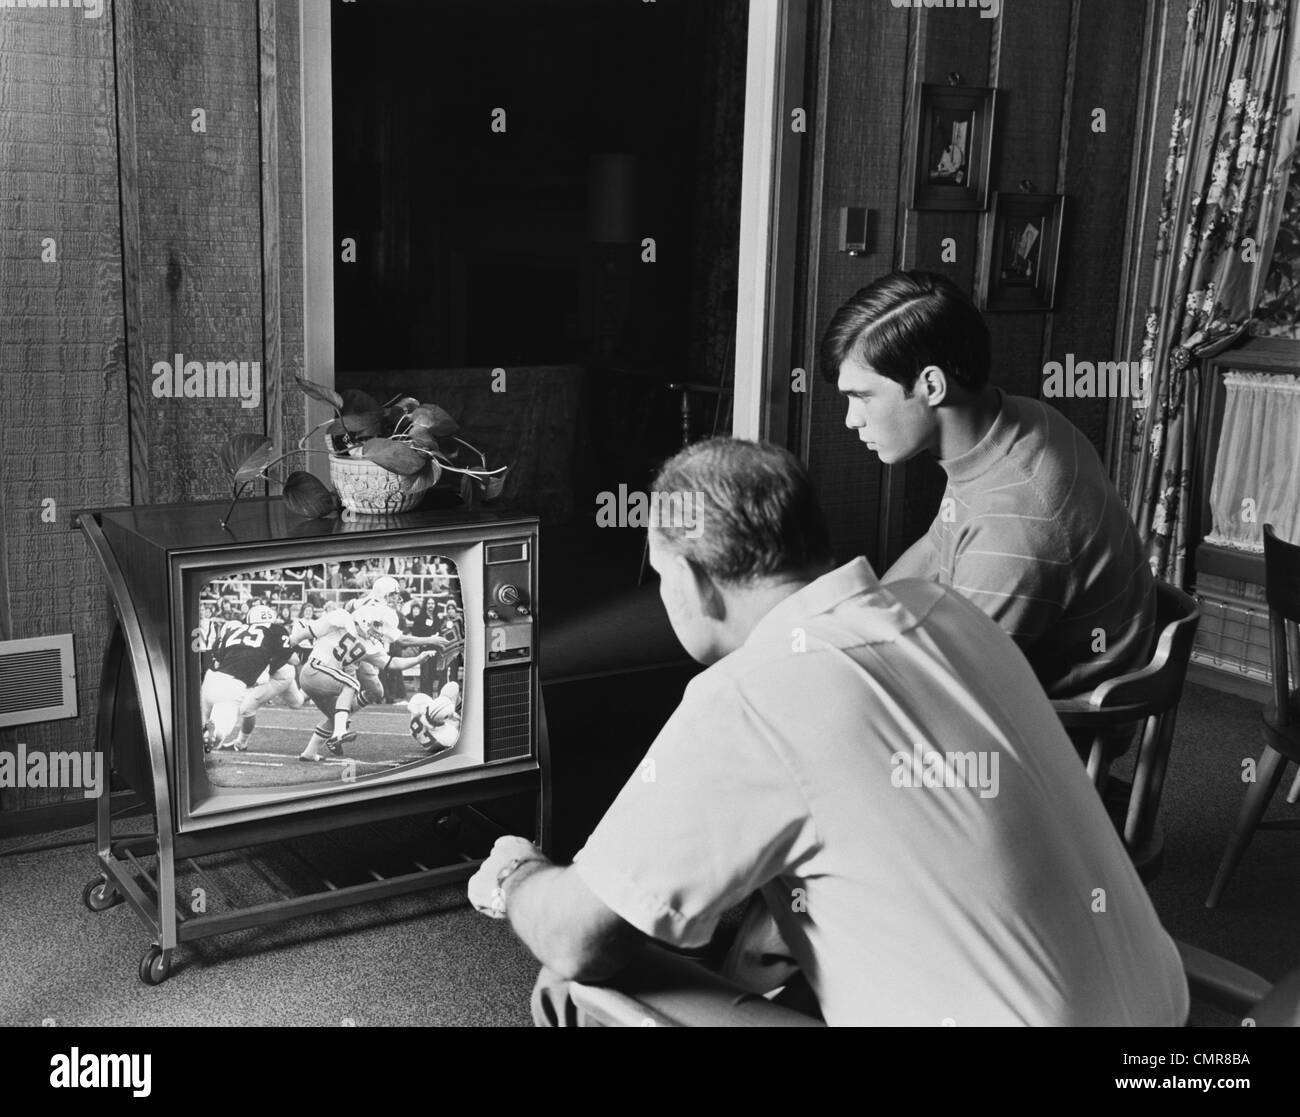 1960s 1970s TEEN BOY WATCHING FOOTBALL GAME ON TELEVISION WITH ADULT DAD - Stock Image